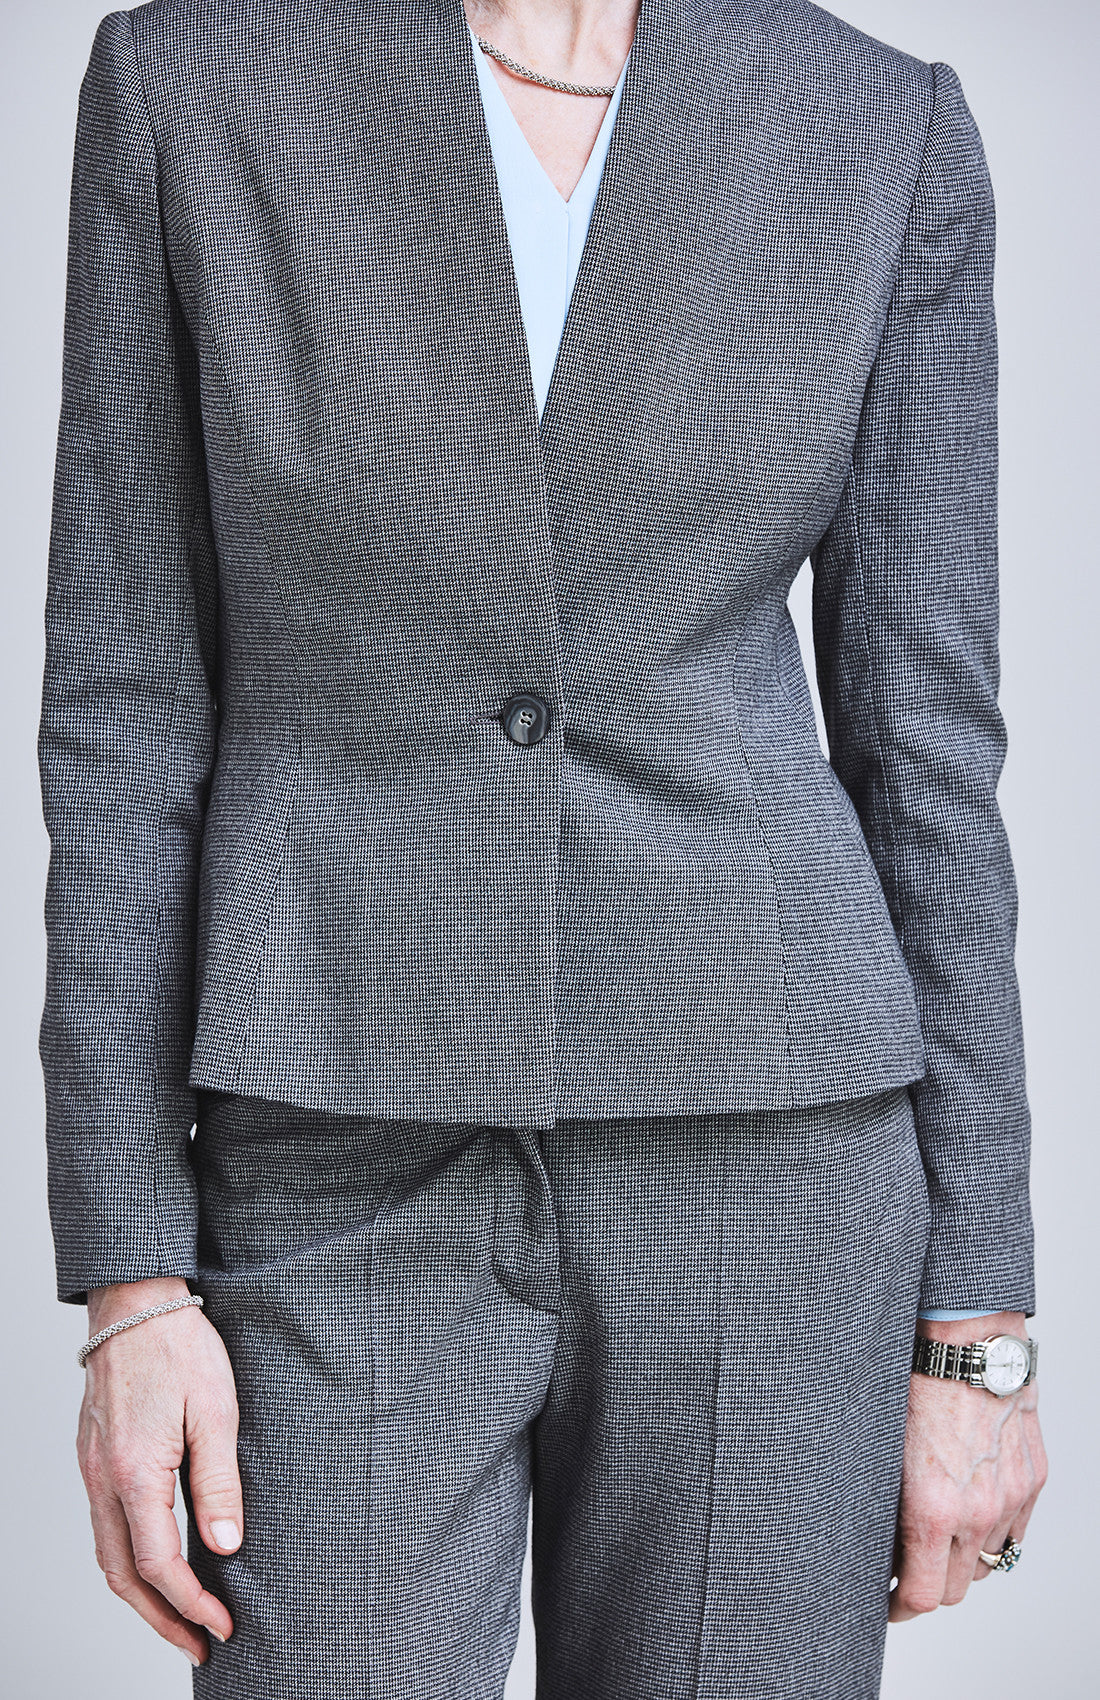 Herringbone feminine tailored fitted suit jacket for the office